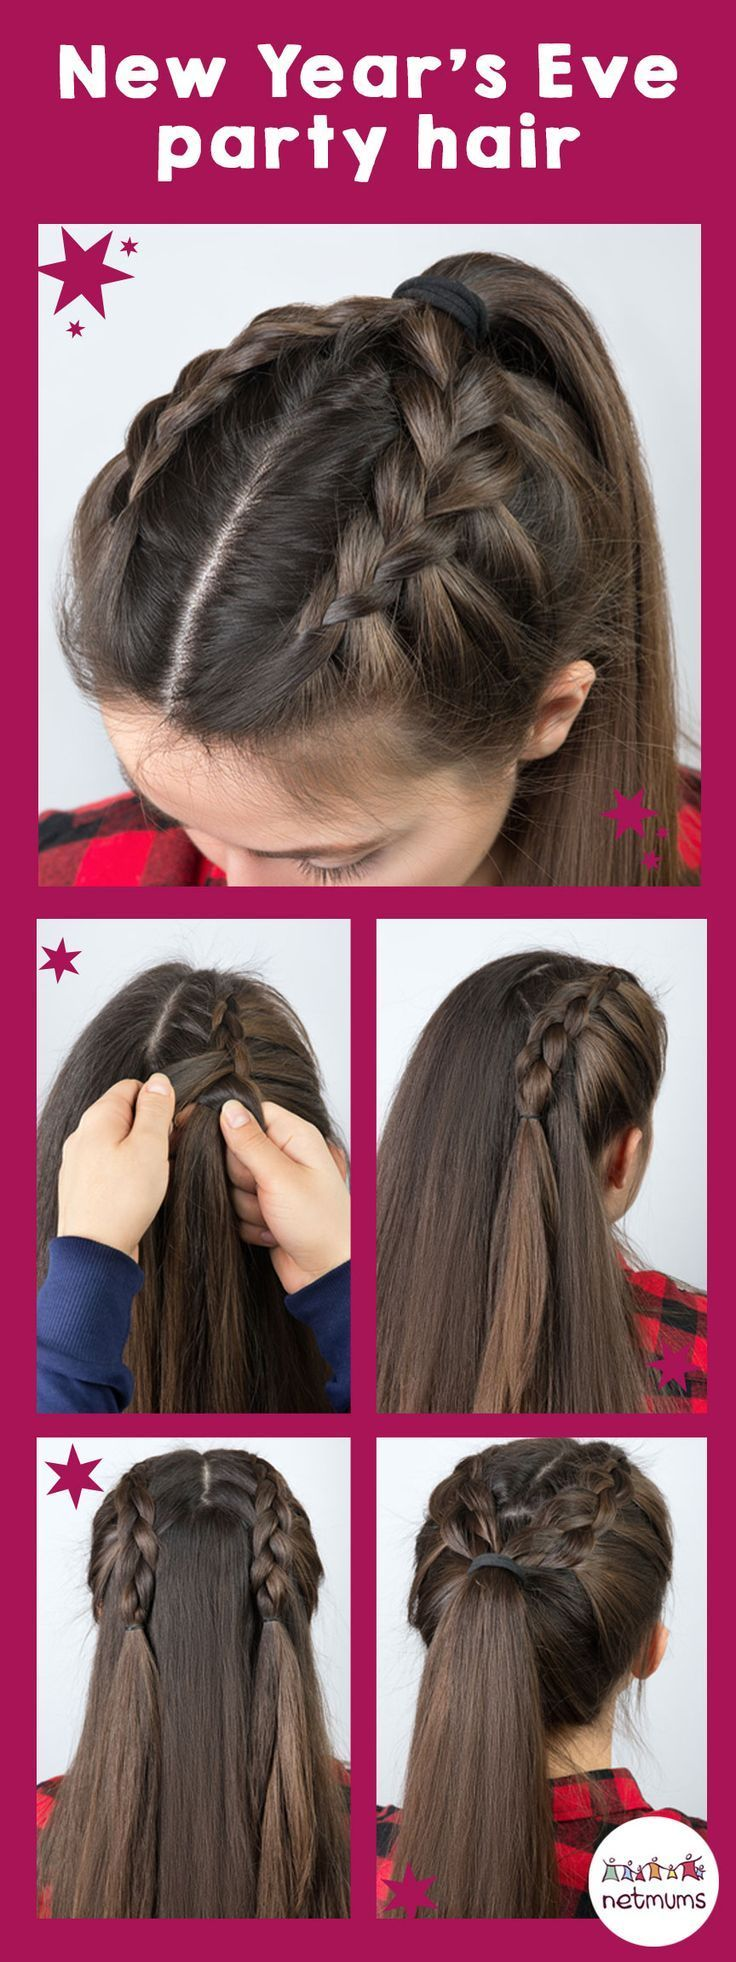 Simple Hair Tutorials